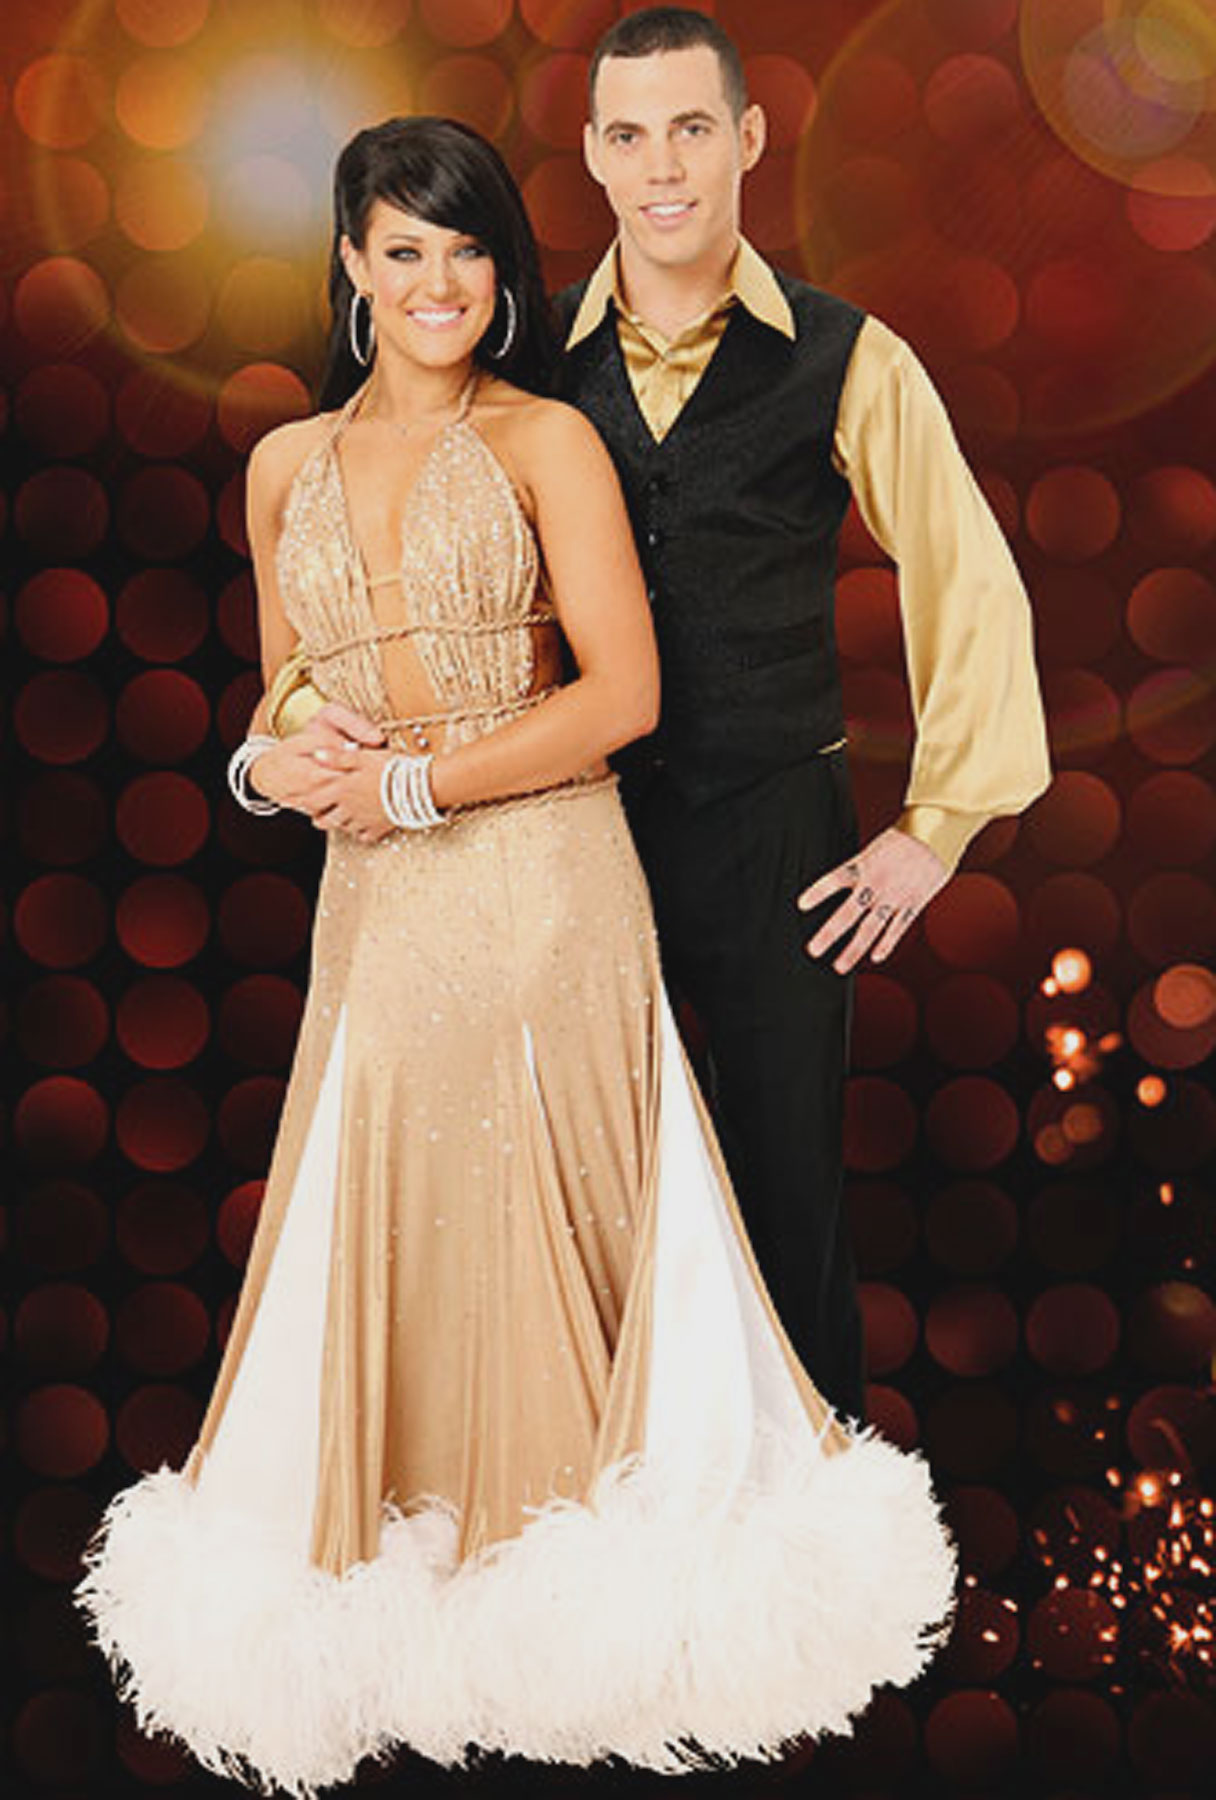 'Dancing with the Stars': Fascinating Pairs for 2009